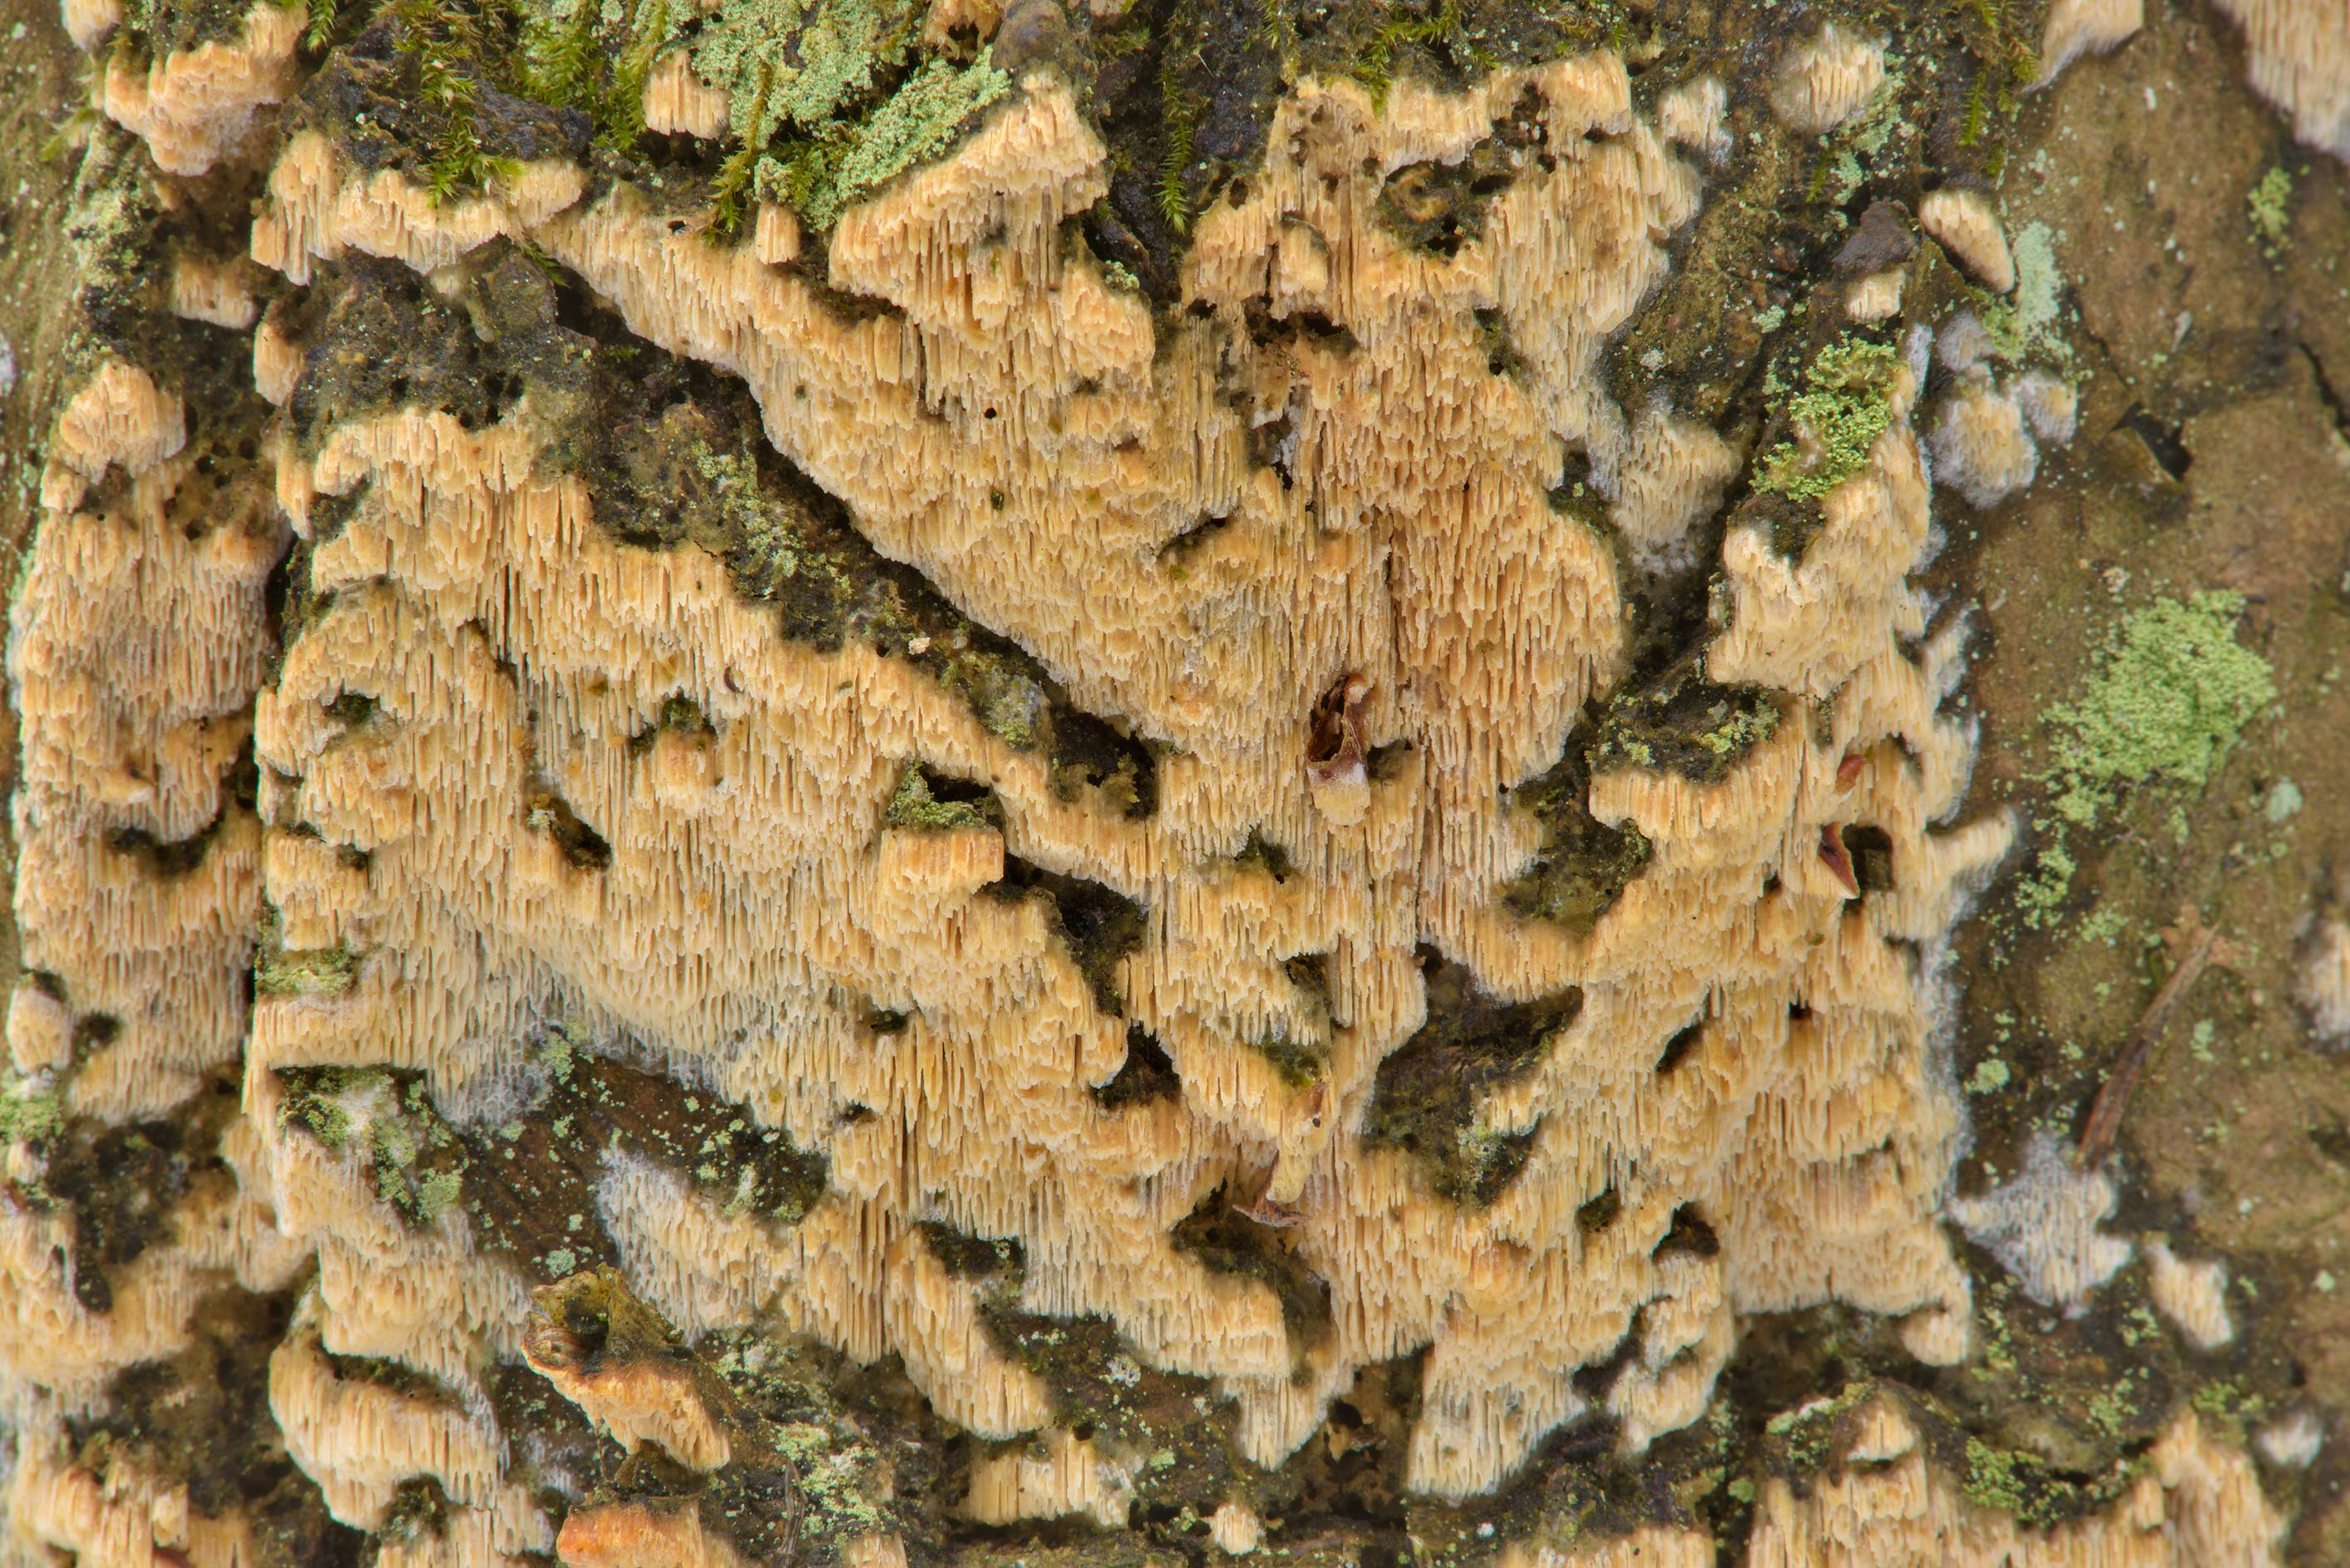 White rot fungus Schizopora paradoxa on a tree...Nos, west from St.Petersburg. Russia